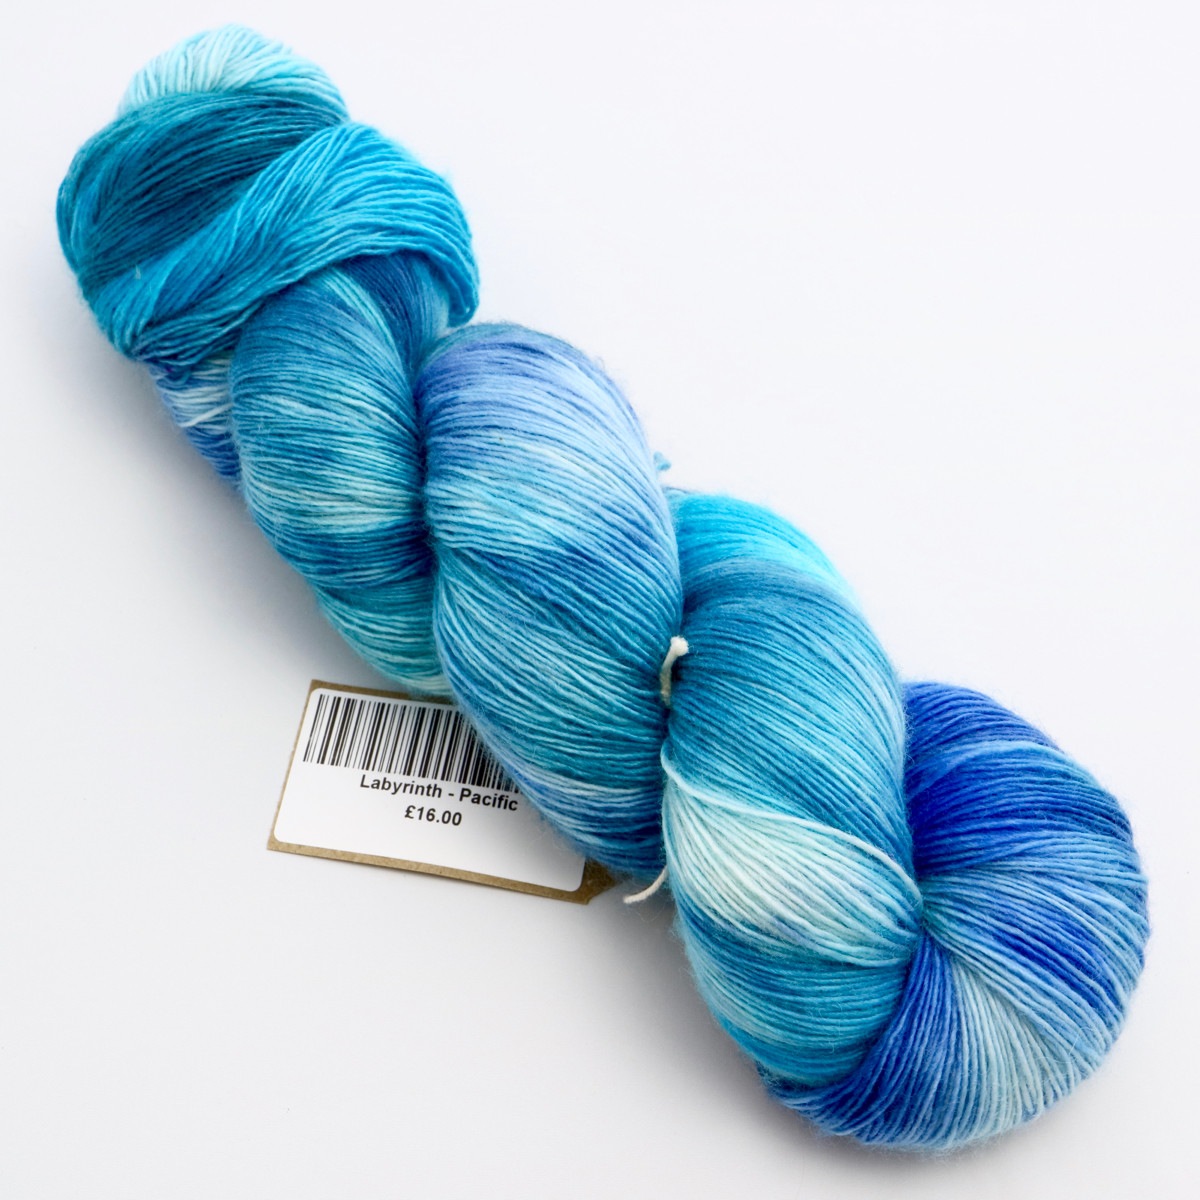 Lovely Labyrinth Pacific the Yarn Gallery Yarn Companies Of Great 45 Images Yarn Companies